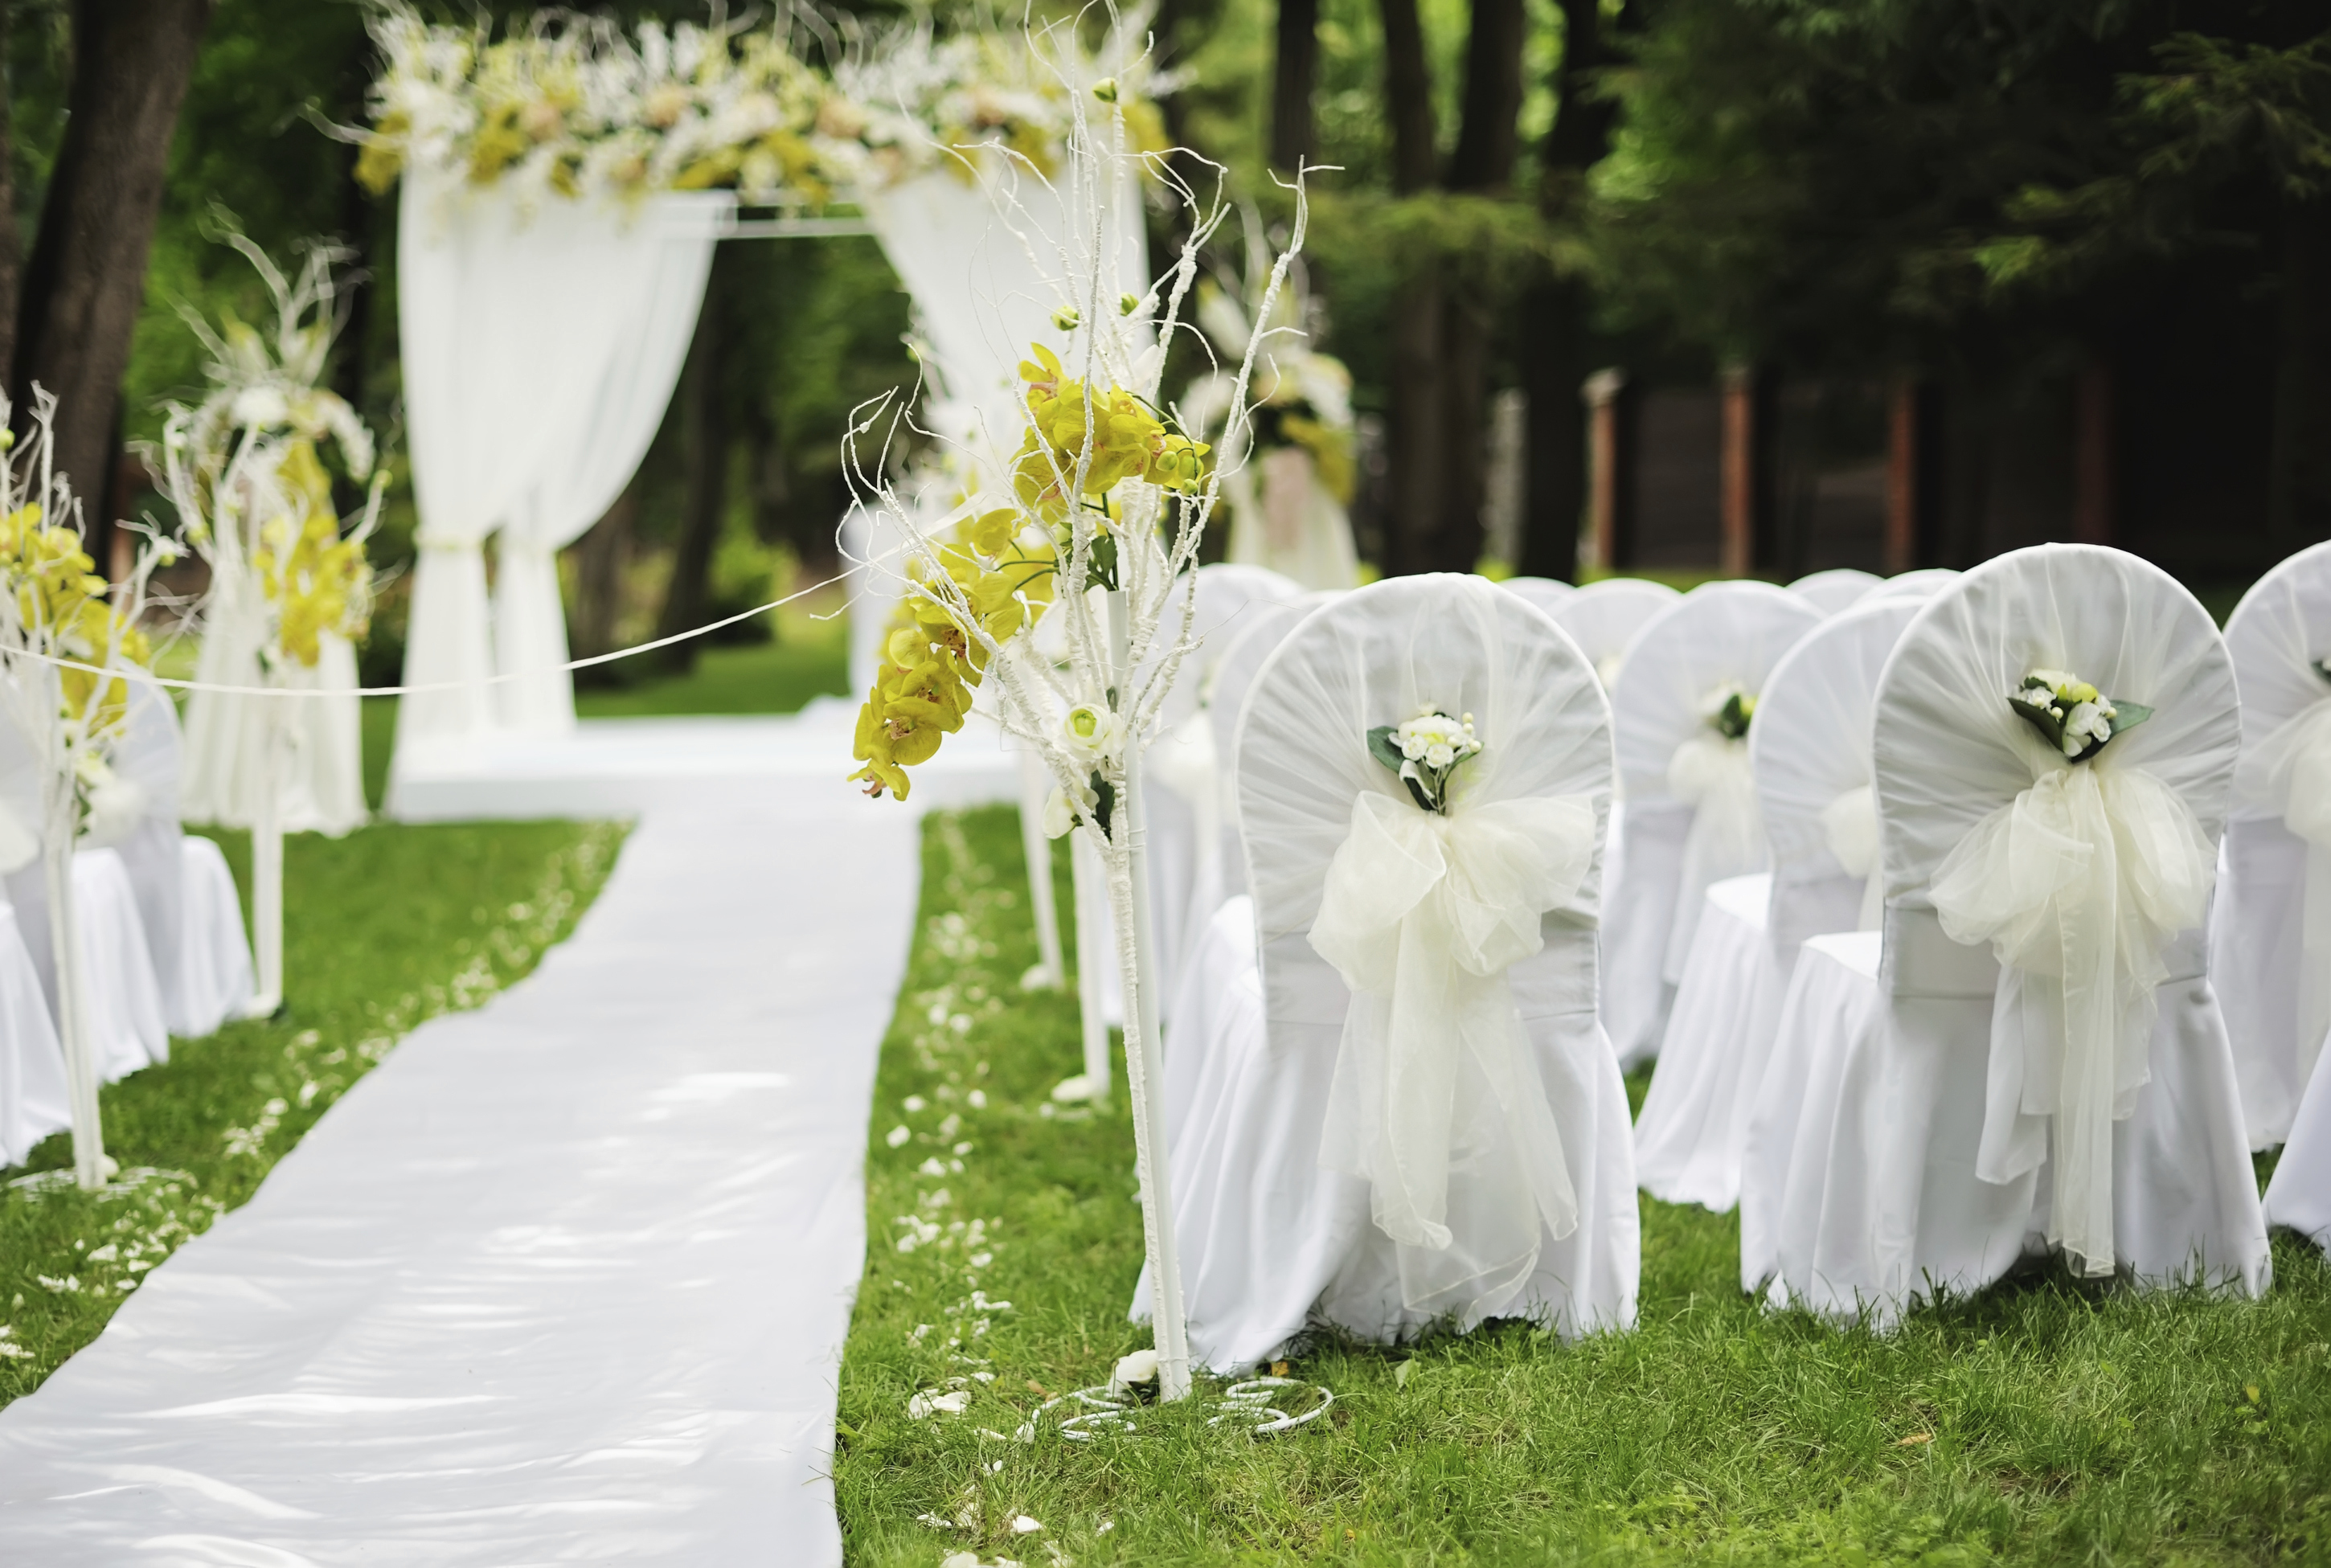 Wedding ceremony chair - Do I Need To Hire Wedding Chair Covers